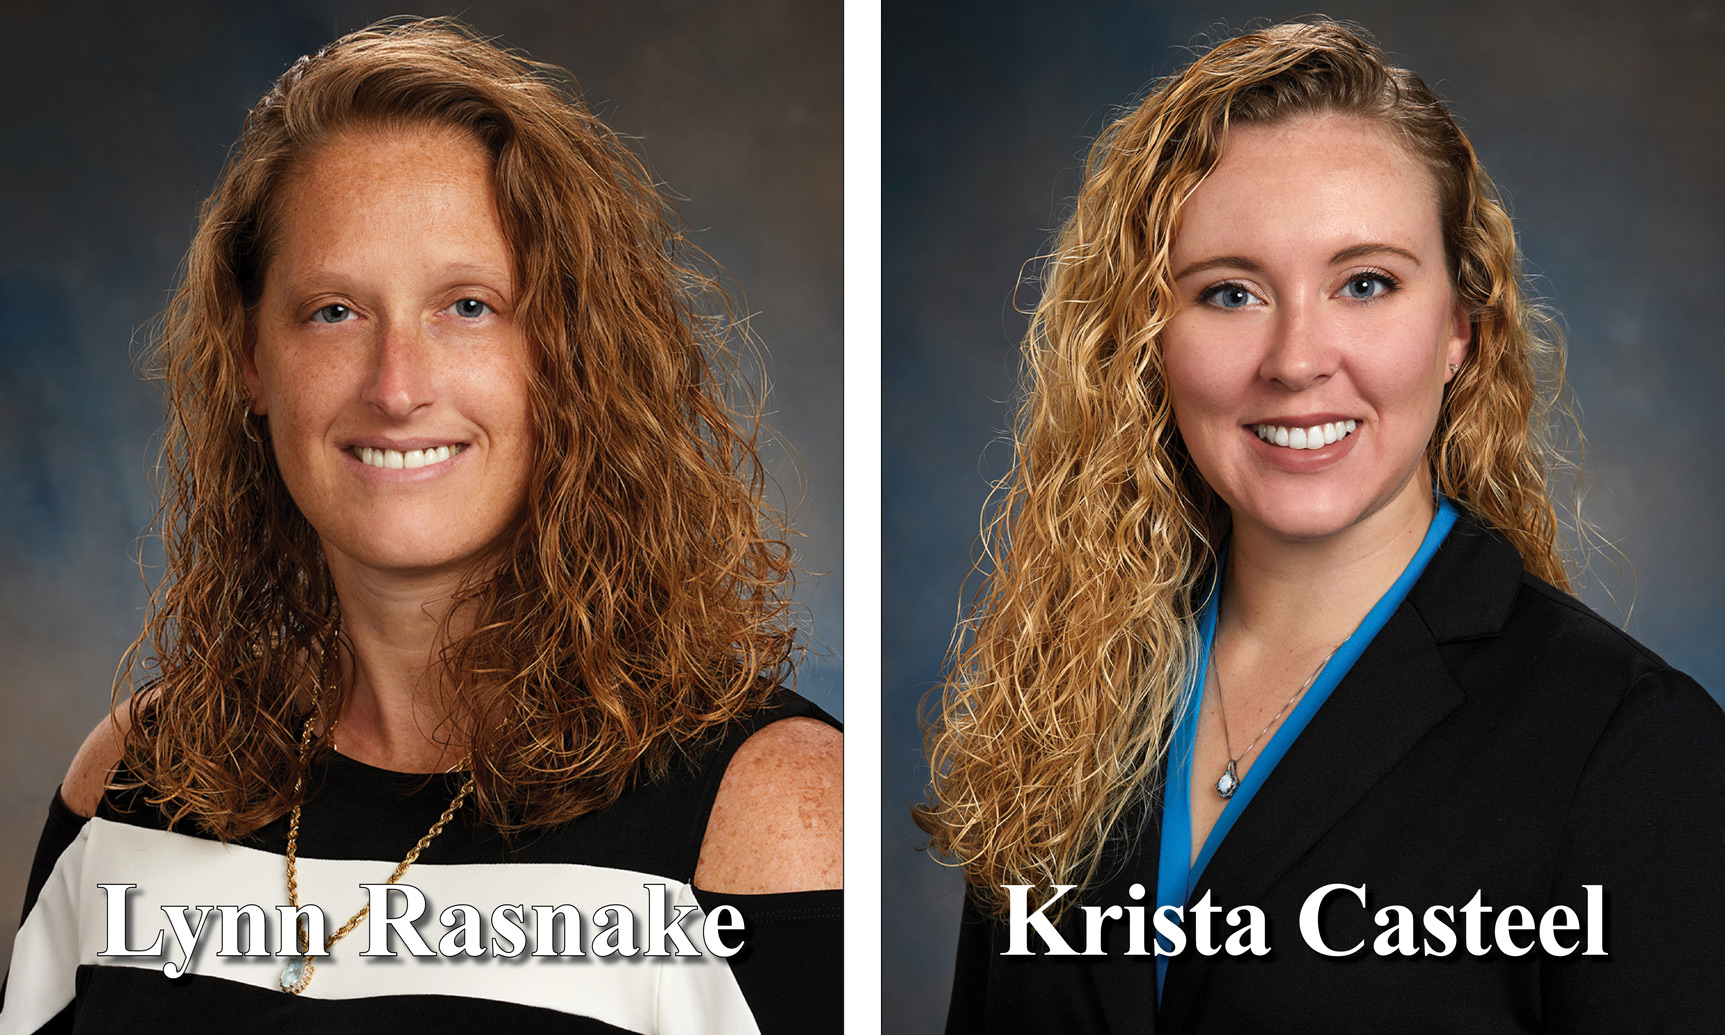 Lynn R. and Krista C. headshots